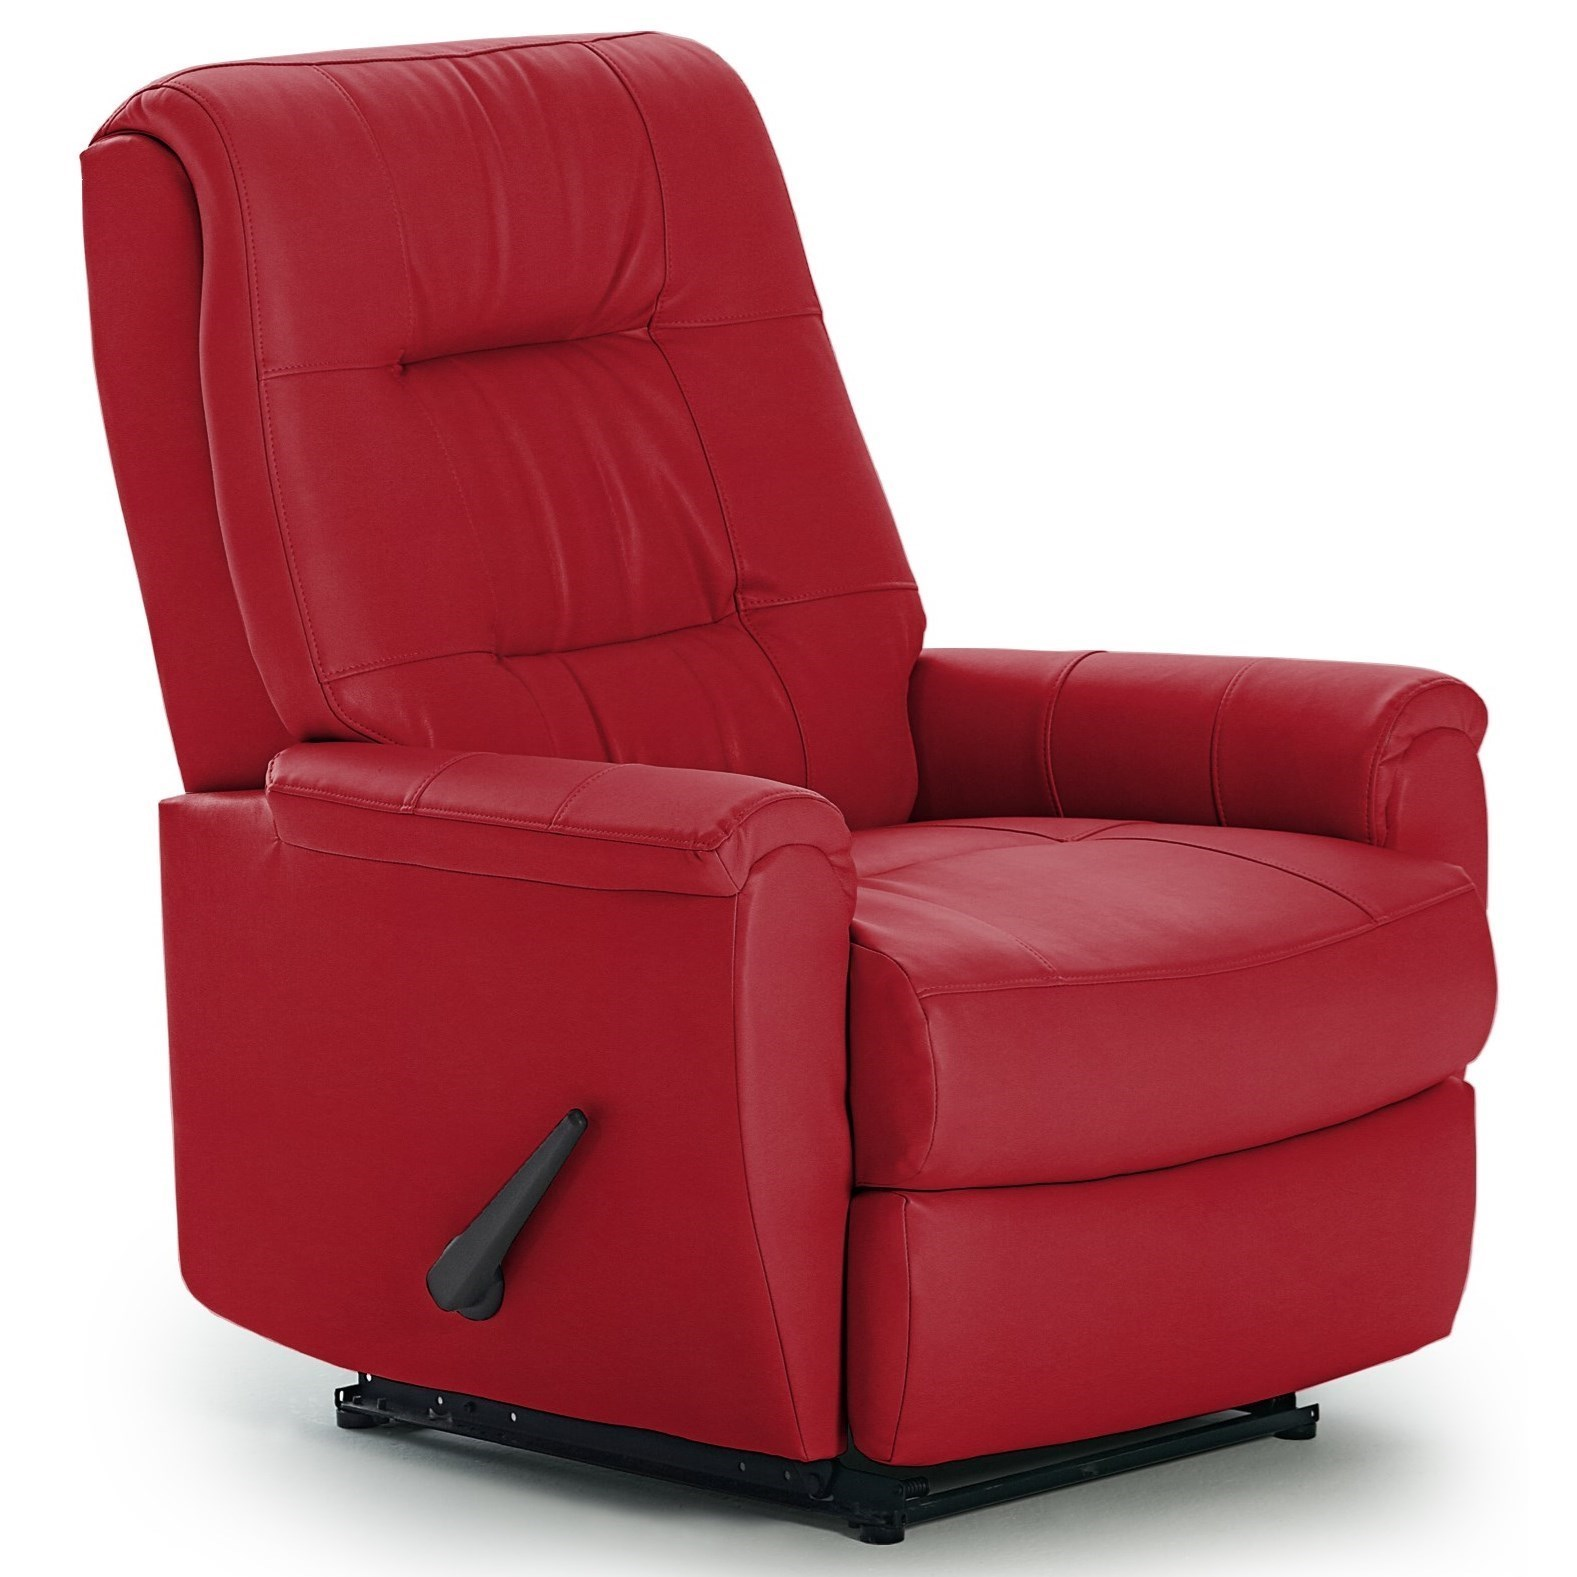 Best Home Furnishings Recliners - Petite Felicia Rocker Recliner with Button-Tufted Back  sc 1 st  Wayside Furniture & Best Home Furnishings Recliners - Petite Felicia Rocker Recliner ... islam-shia.org